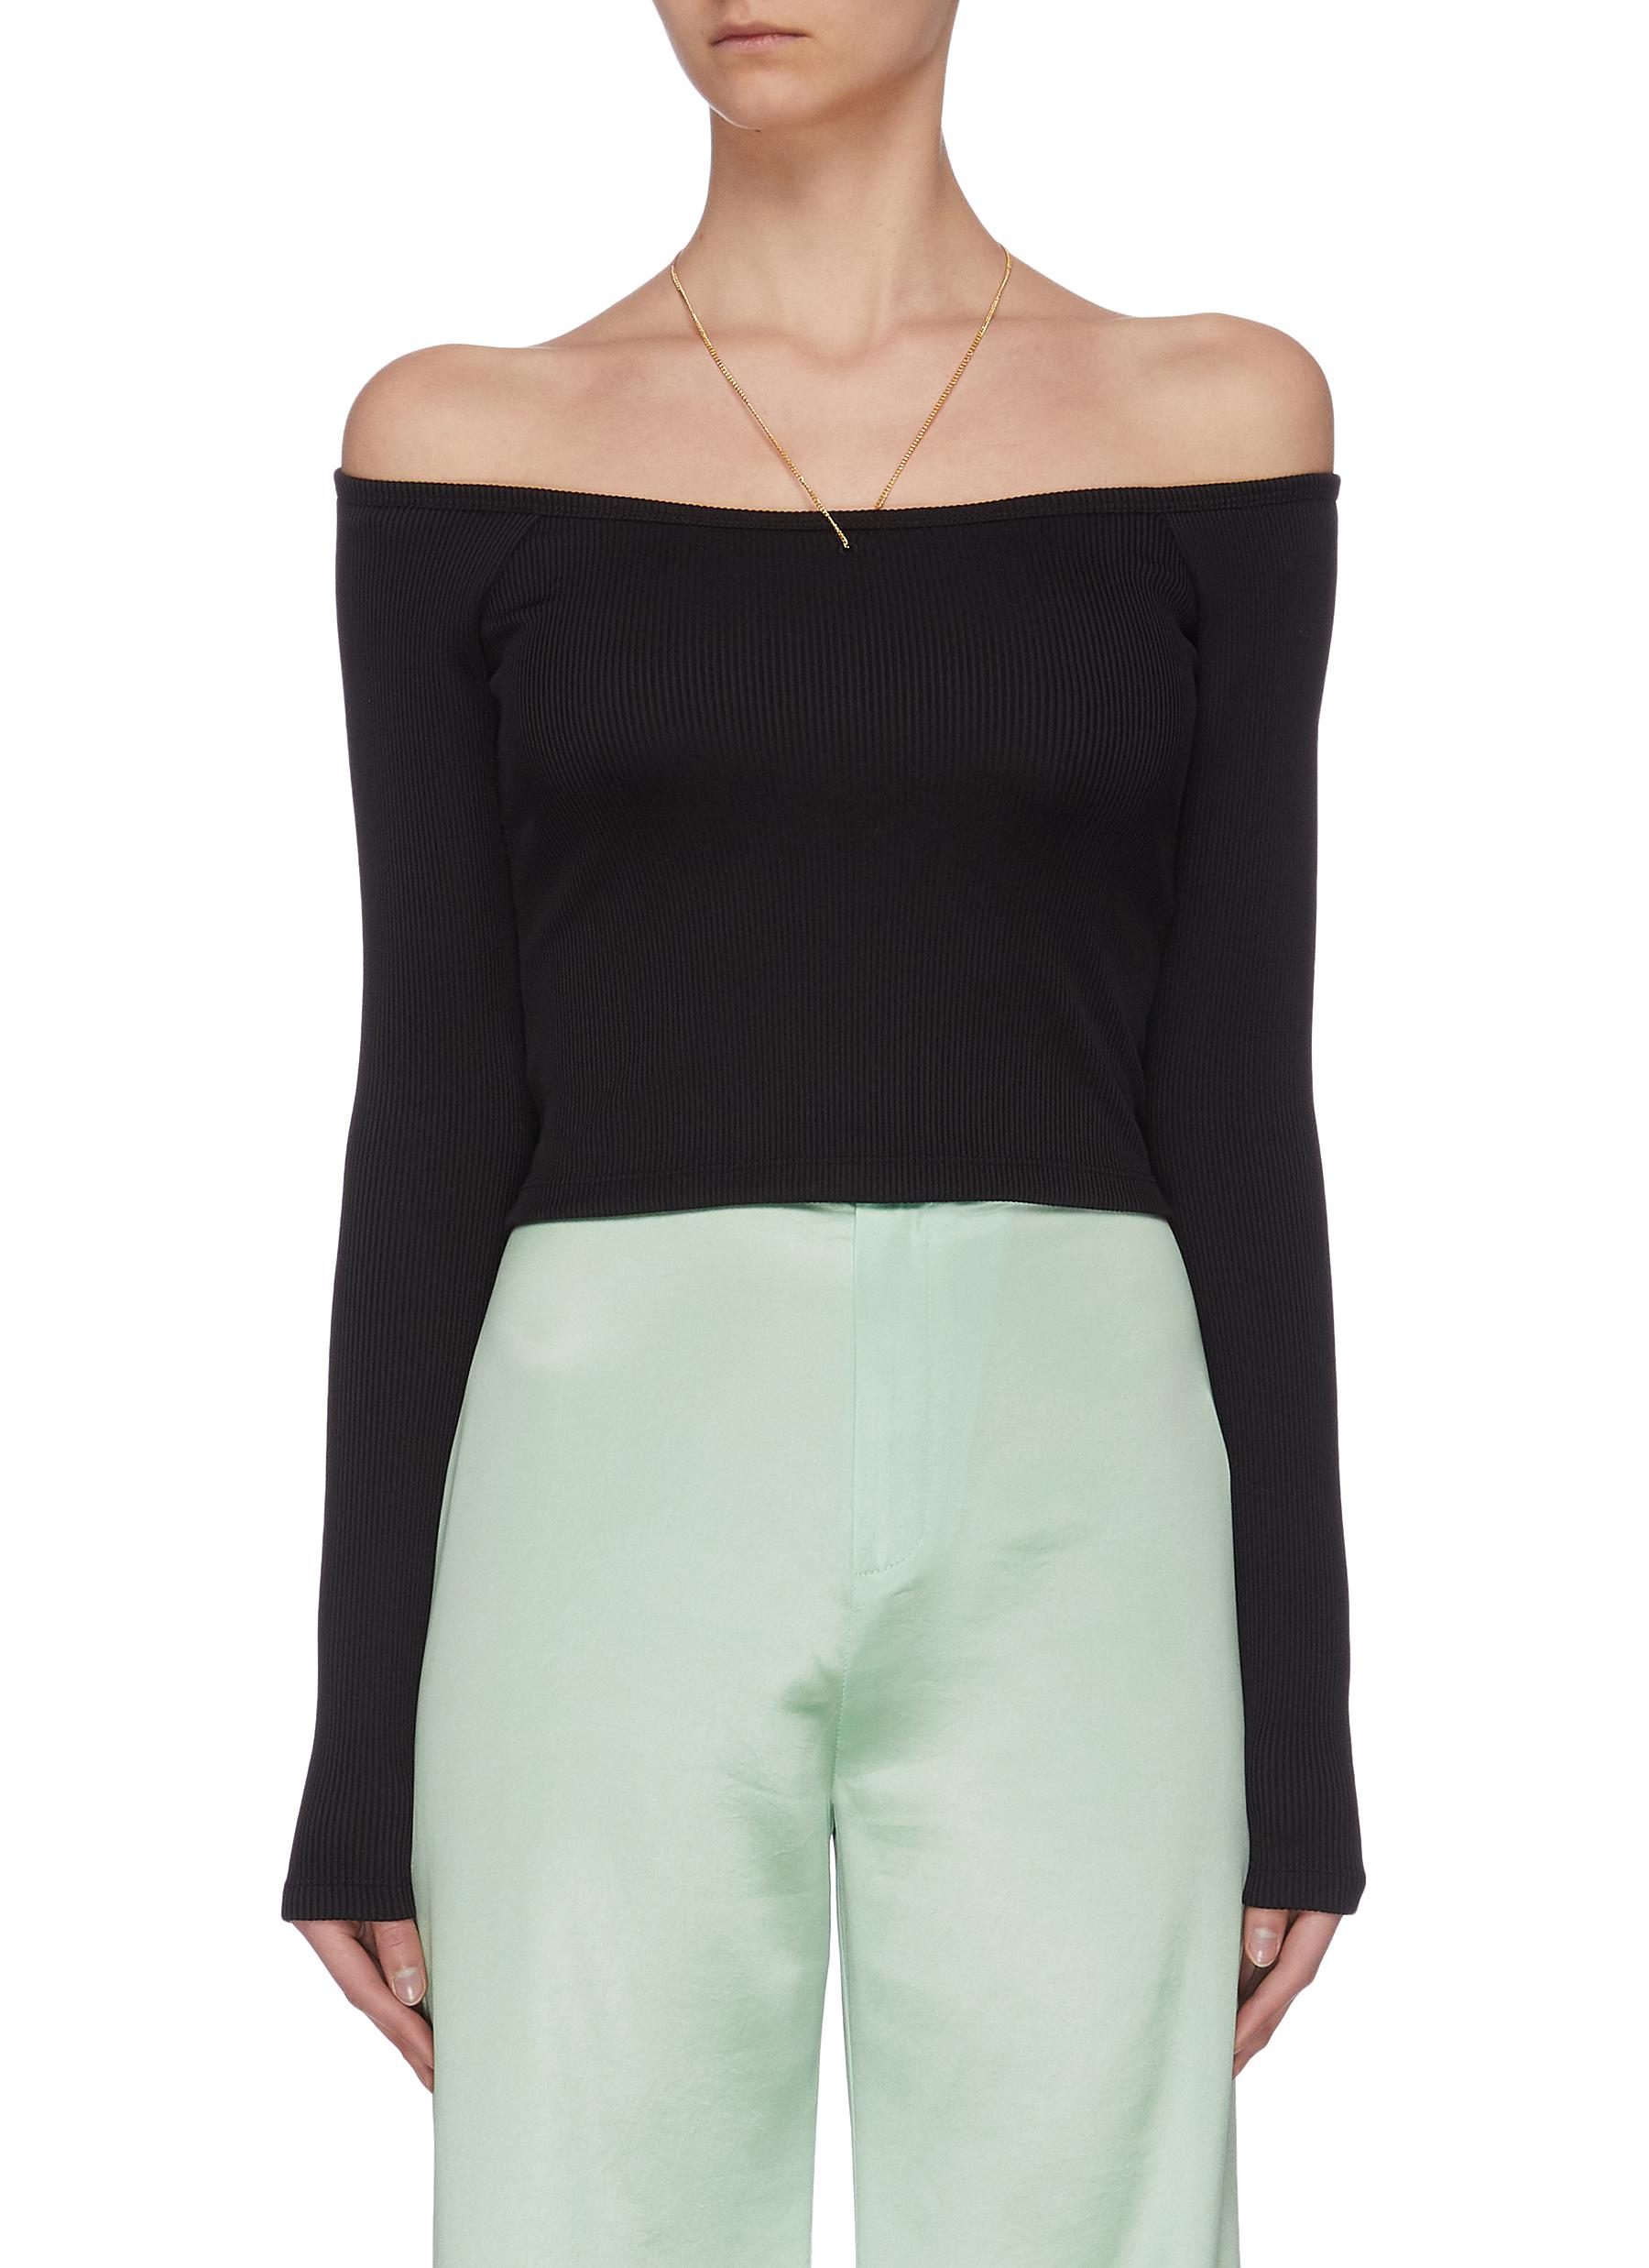 Buy Alexanderwang.T Knitwear 'Bodycon' chain detail off shoulder top